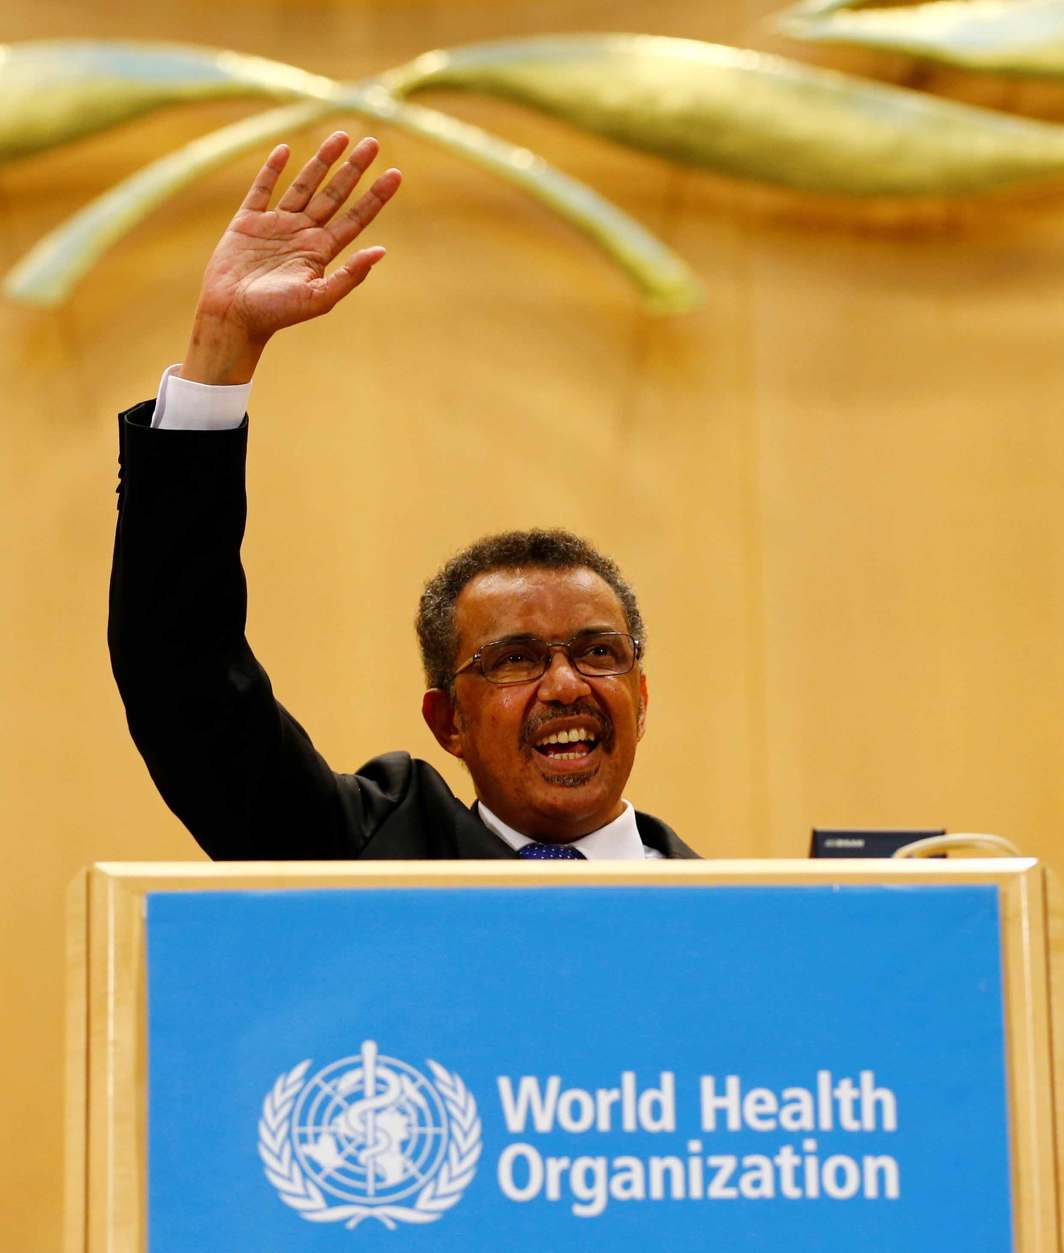 FOR A HEALTHIER WORLD: Newly-elected director general of the World Health Organization, Tedros Adhanom Ghebreyesus, waves after his speech during the 70th World Health Assembly in Geneva, Reuters/UNI